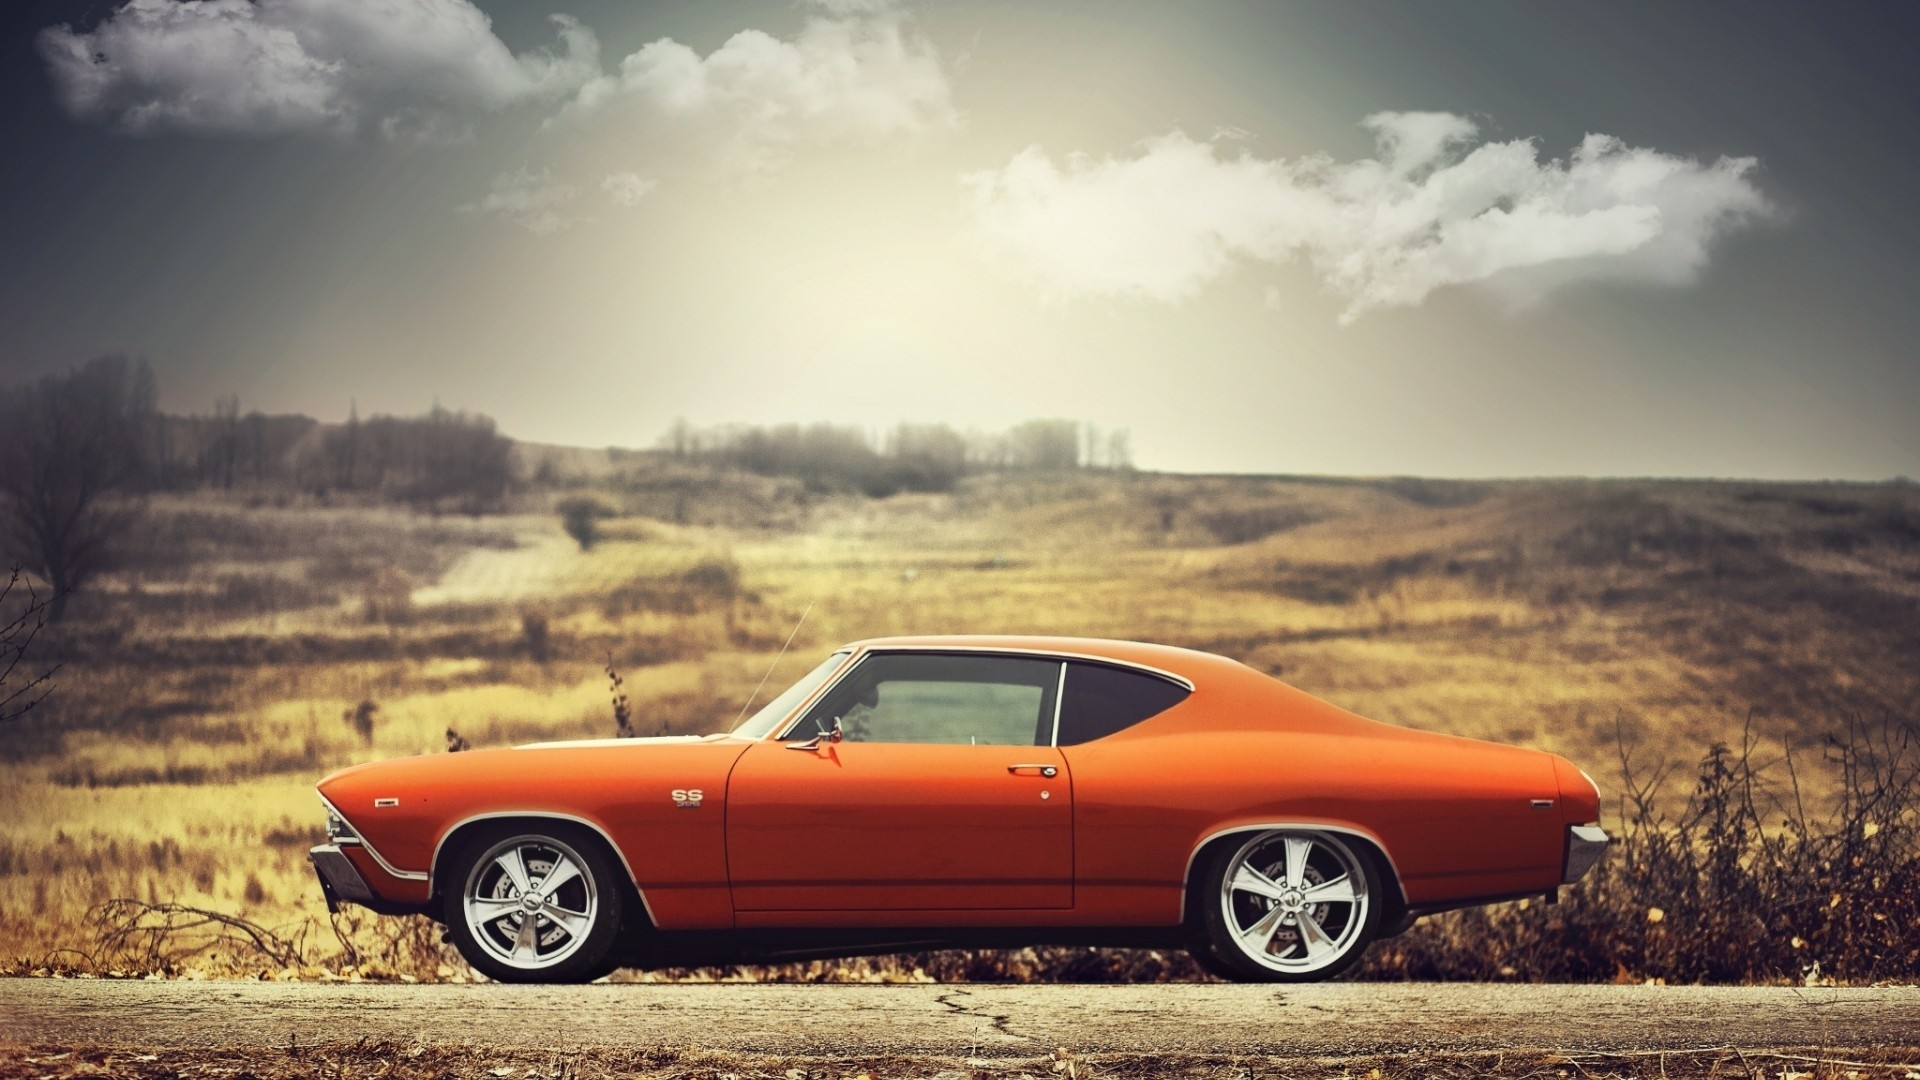 Chevy wallpaper download